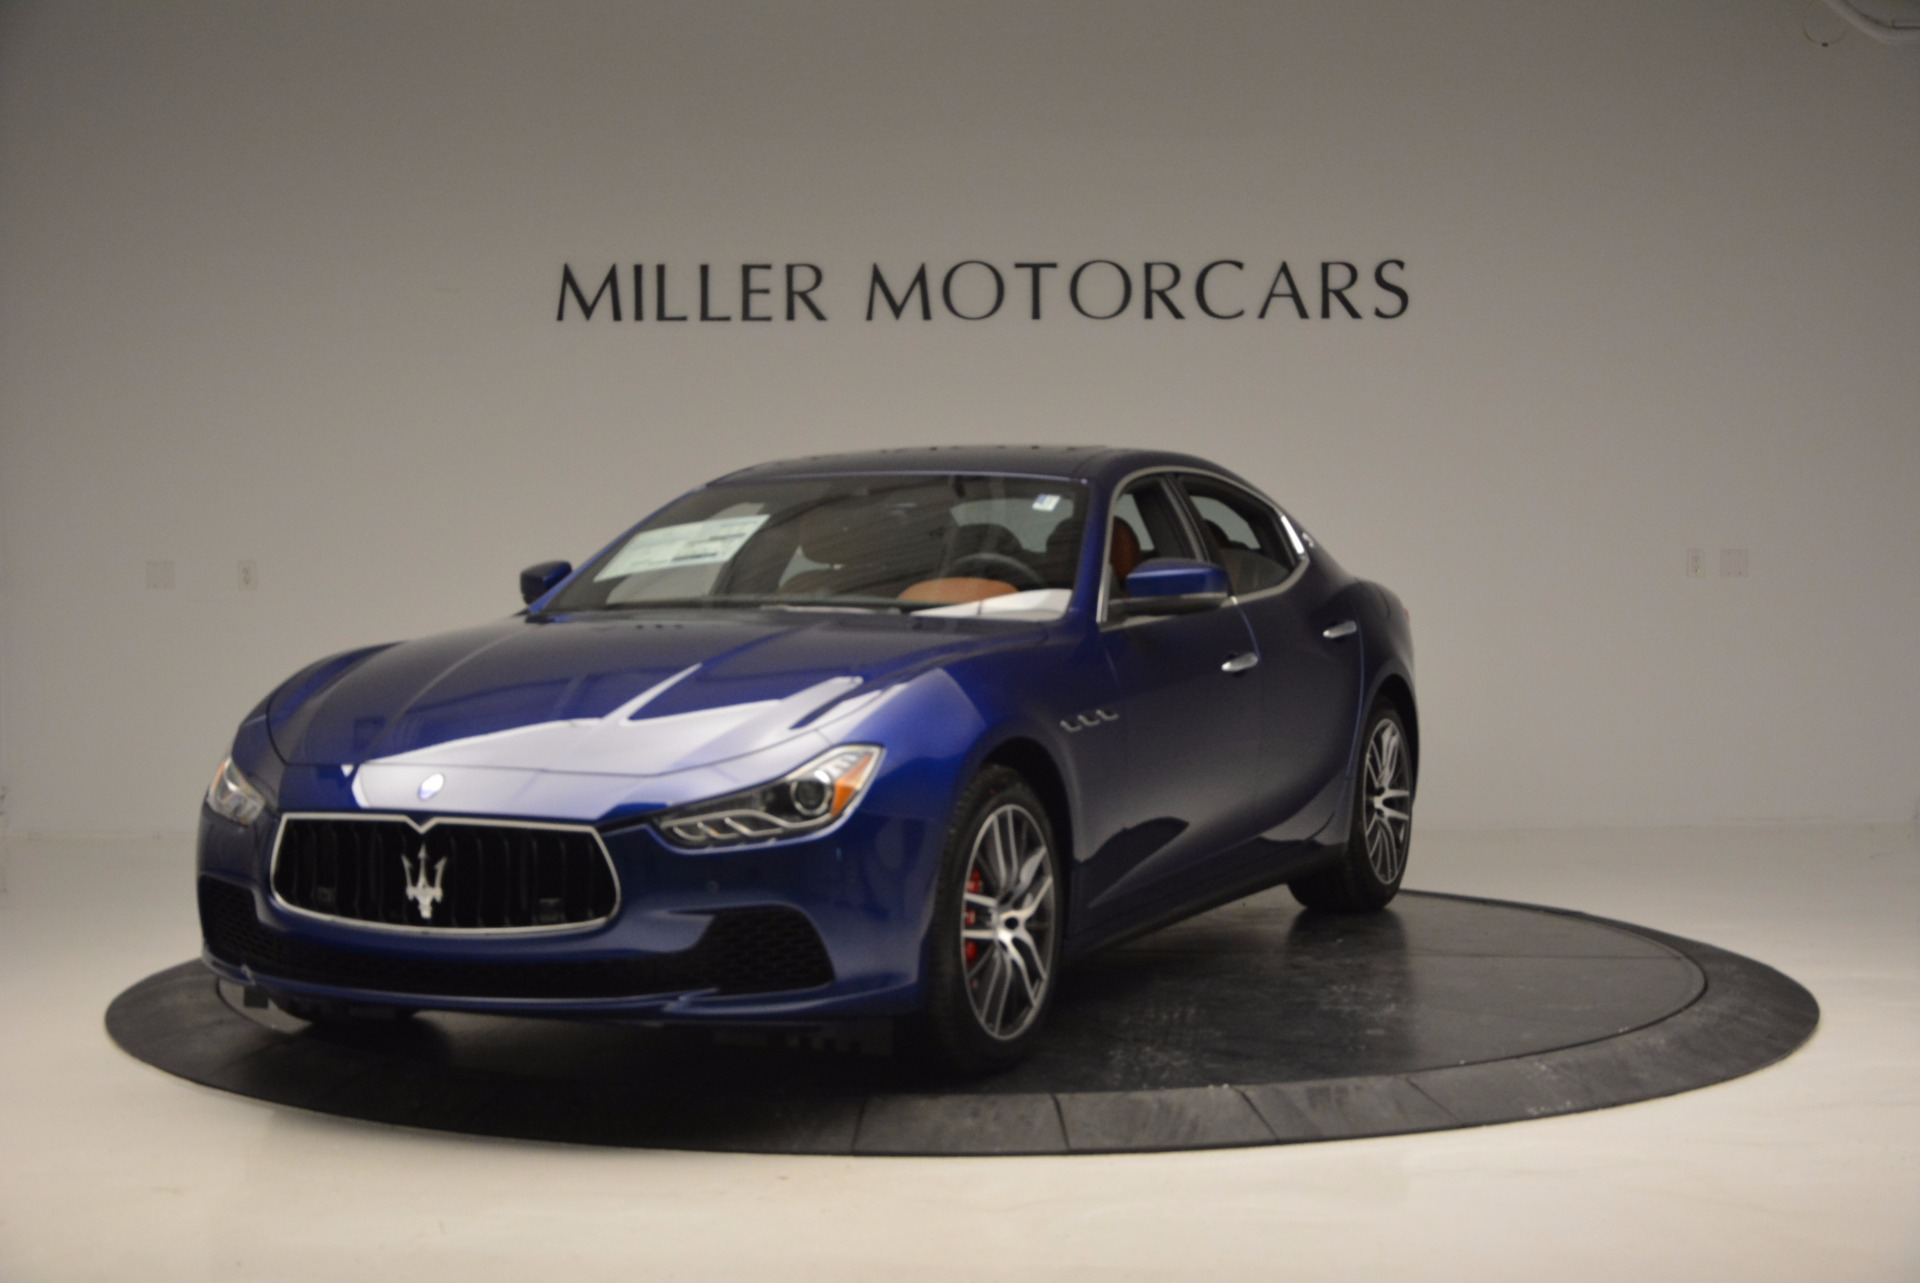 New 2017 Maserati Ghibli S Q4 For Sale In Greenwich, CT 712_main